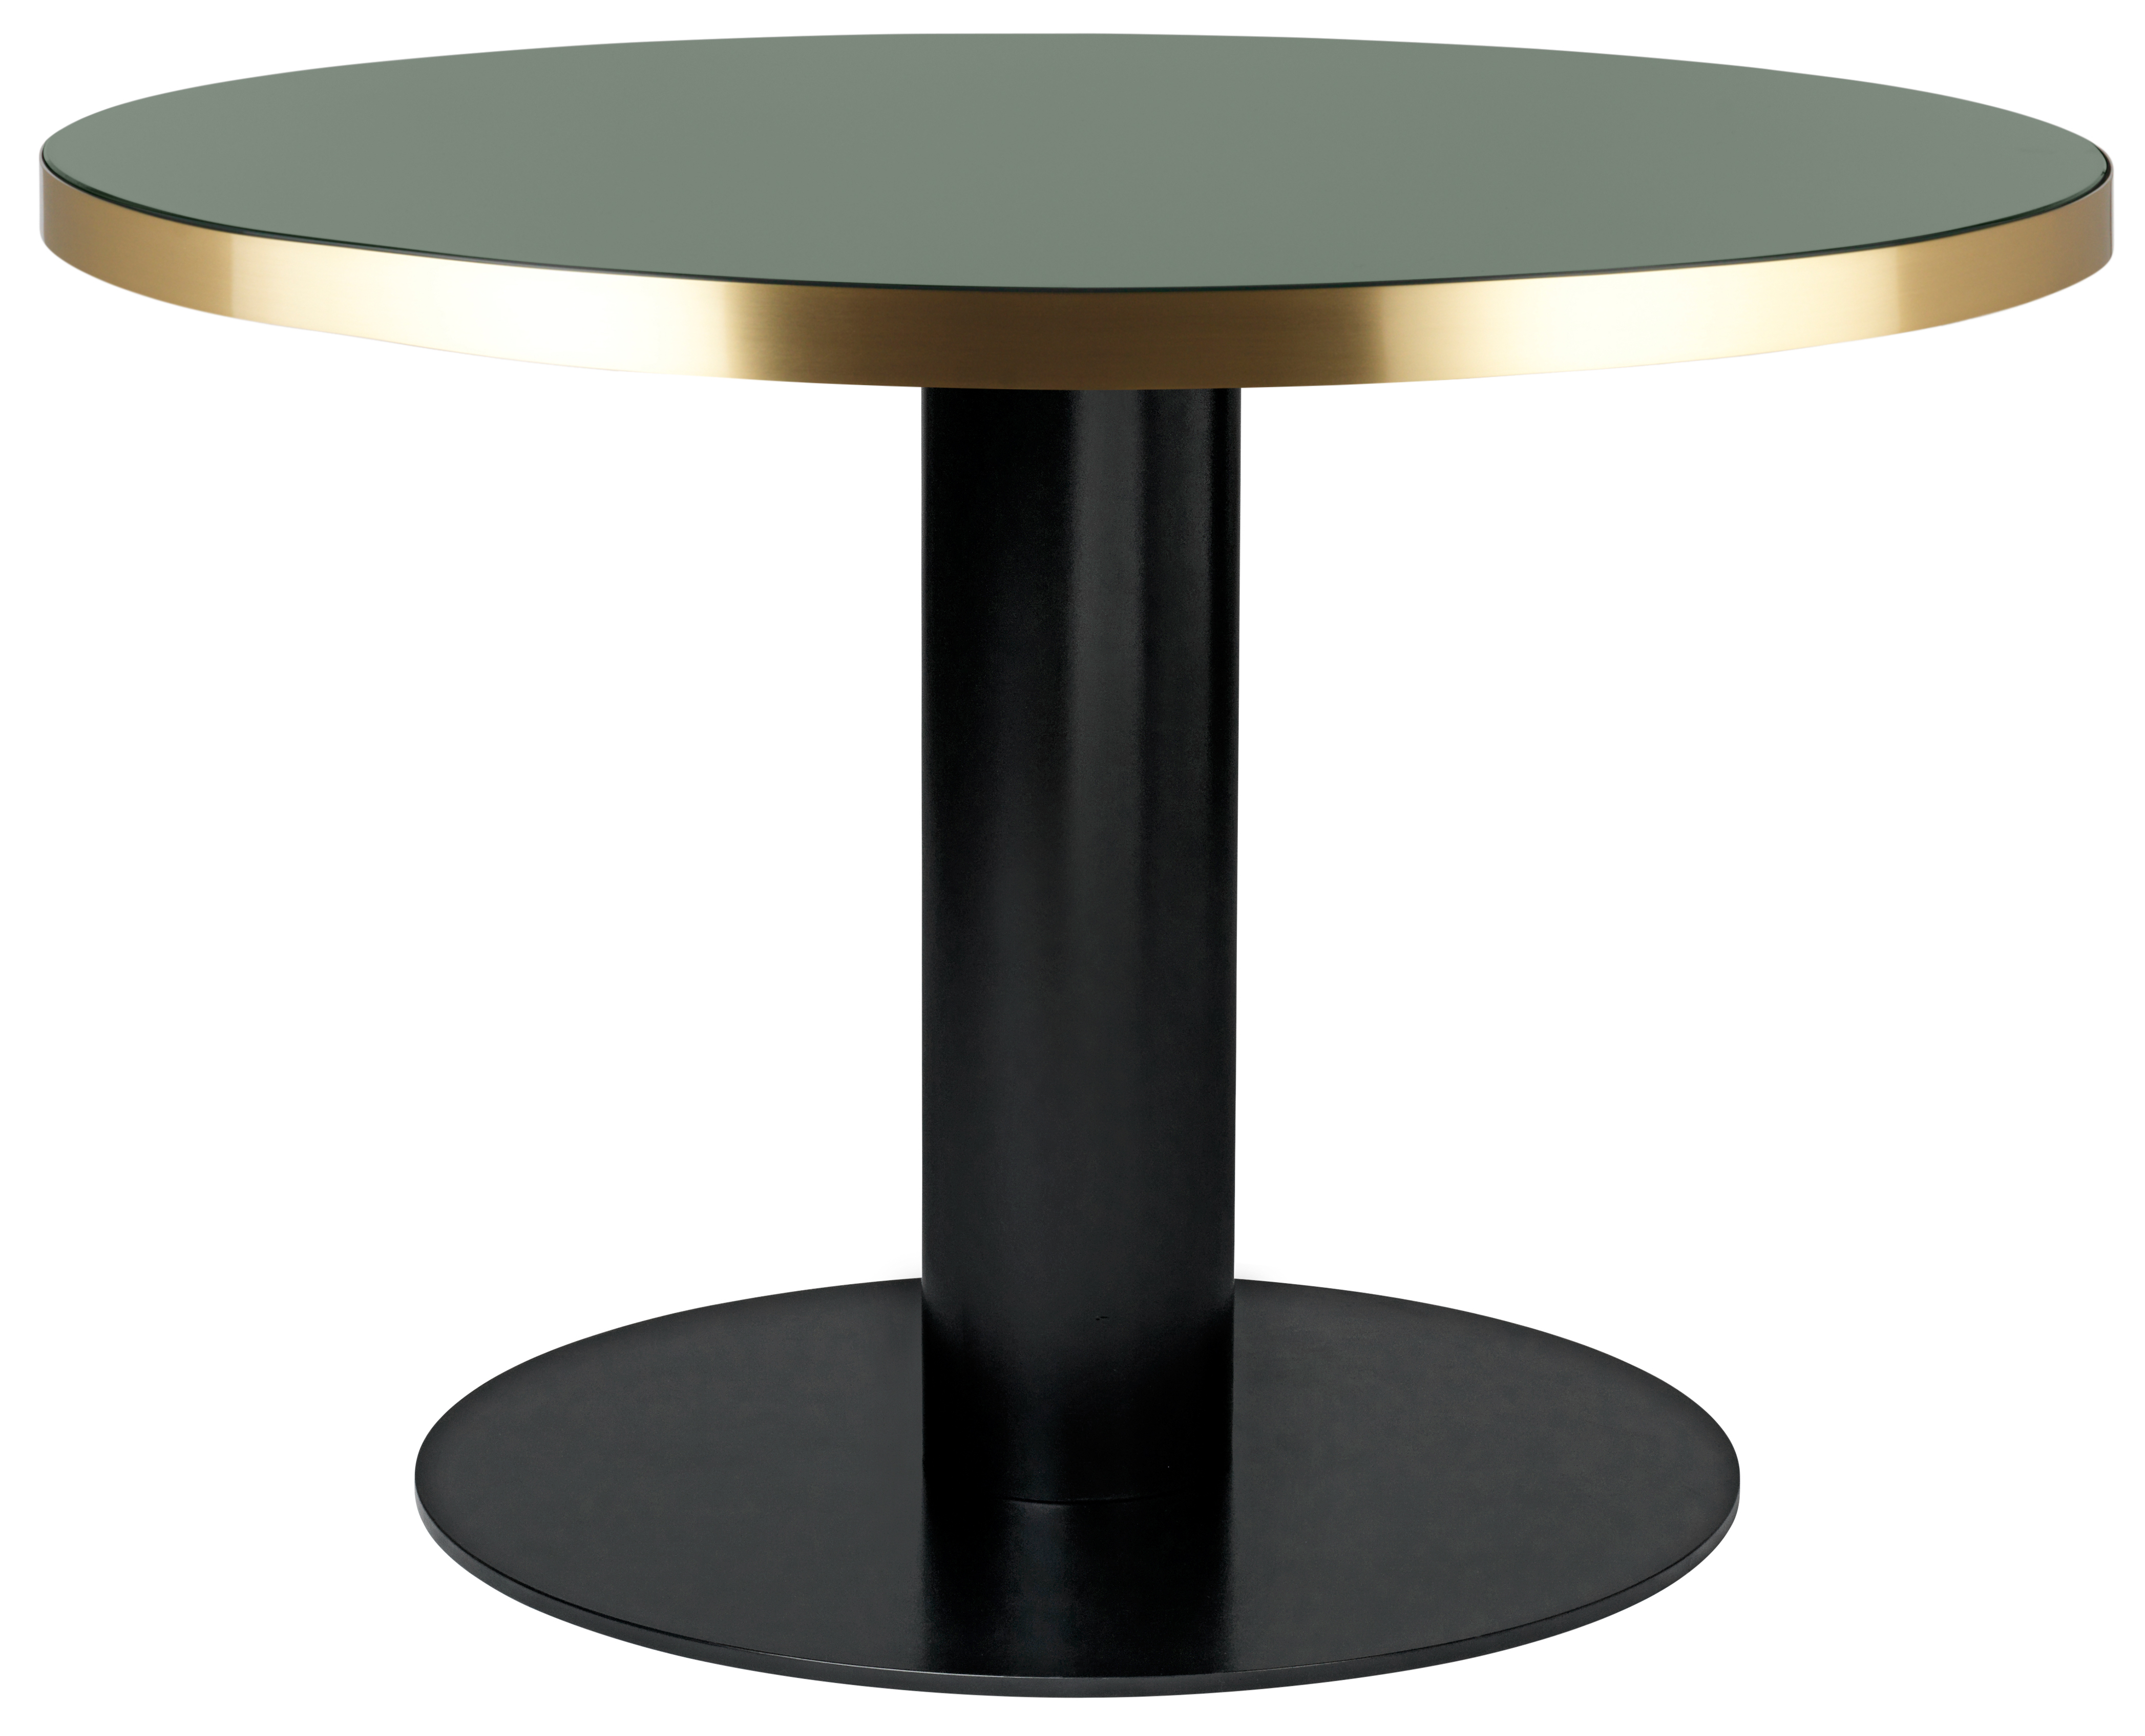 The Gubi Round Table 2.0 With Glass Top Comes In 2 Dimensions: Ø110cm And  Ø125cm. Its Center Base Is Available With Two Finishes U2013 Brass Or Black U2013  With A ...